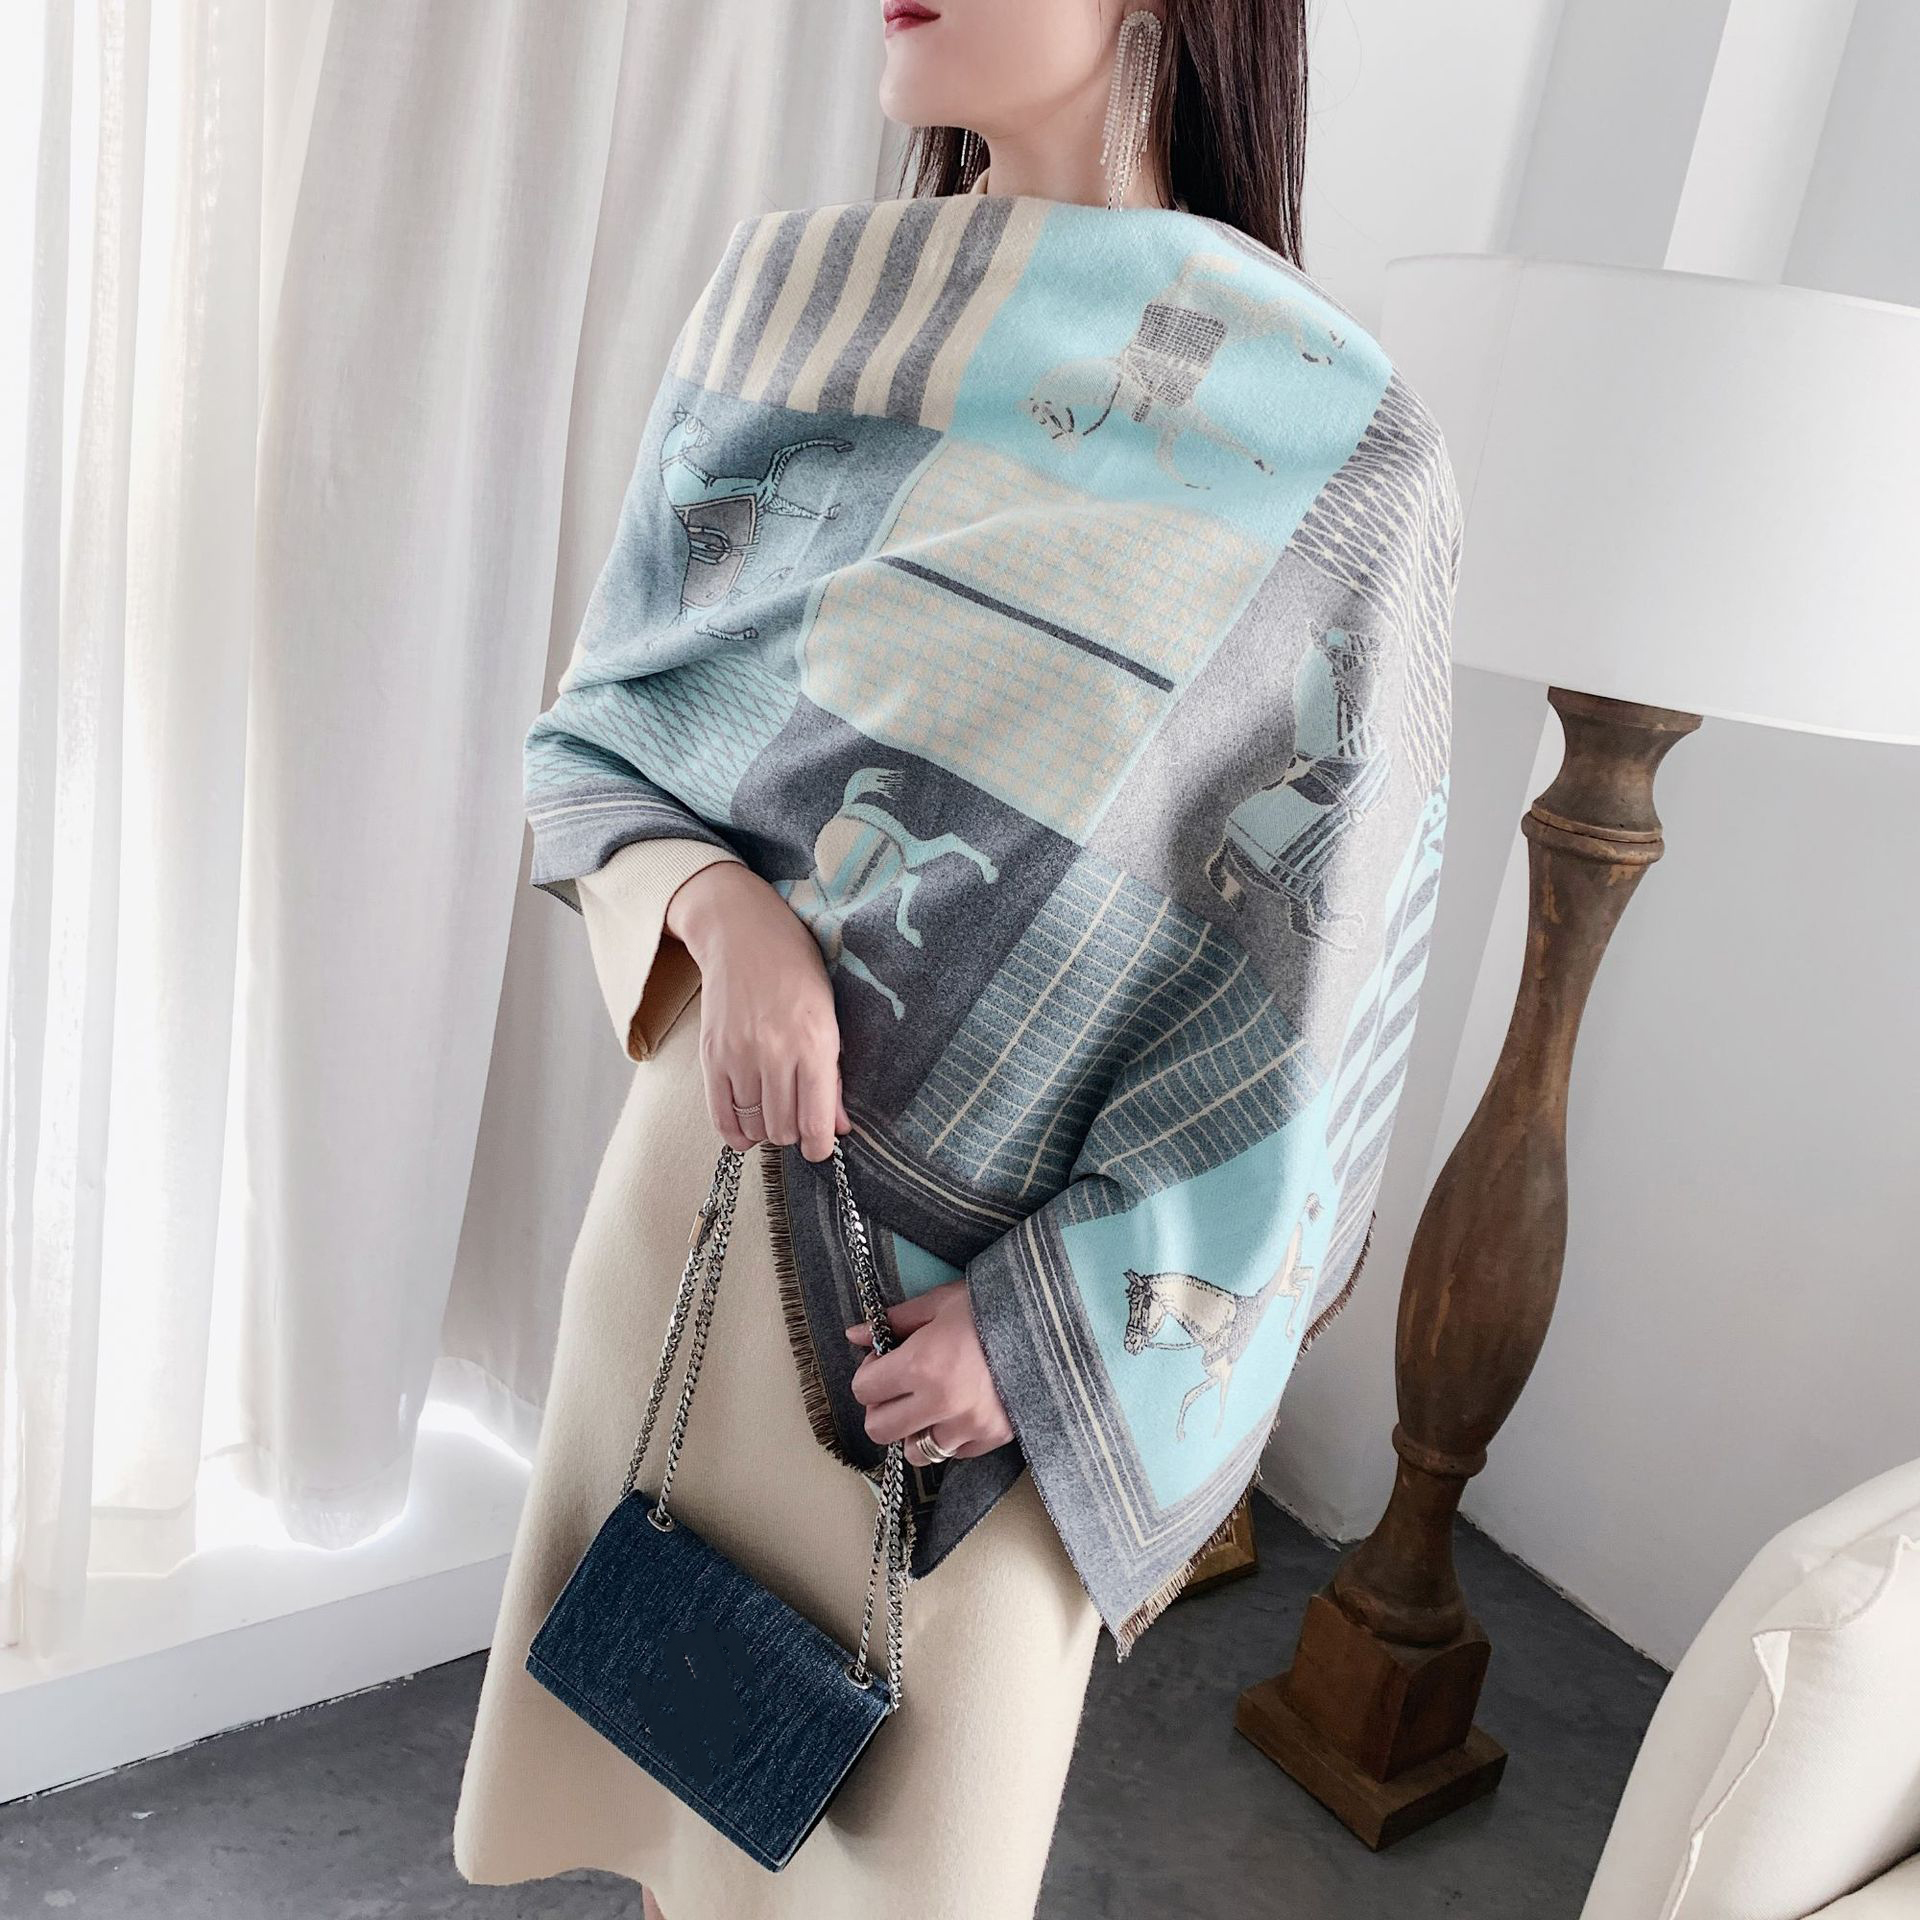 New Horse Printing Women Scarves Imitation Cashmere Pashmina Scarf Female Winter Thick Warm Shawls Wraps Long Bandana 180 65cm in Women 39 s Scarves from Apparel Accessories